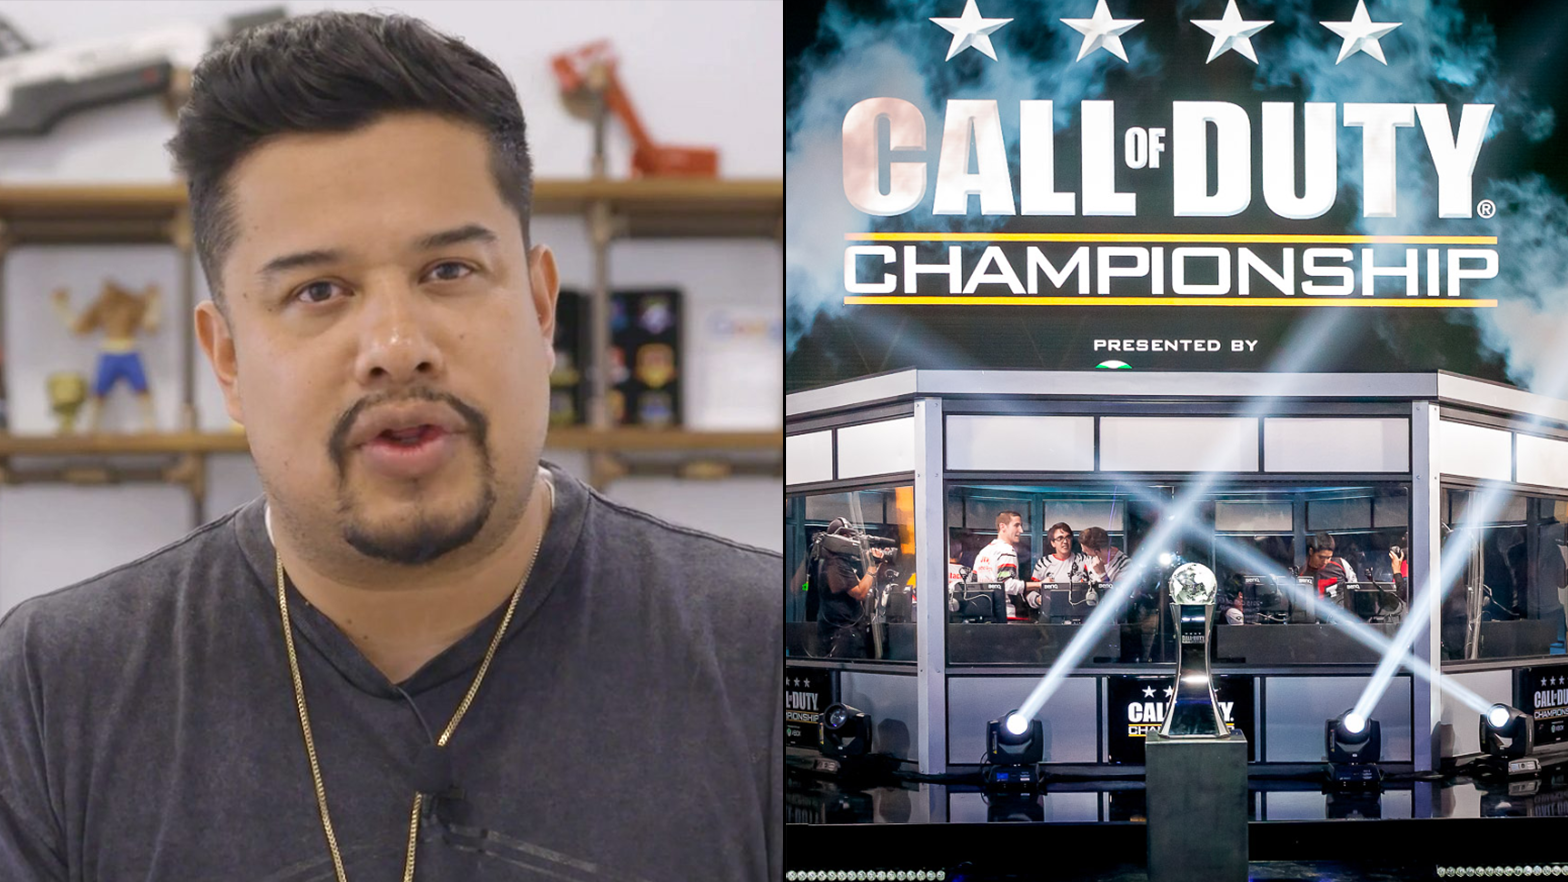 H3CZ talking to the camera / Call of Duty Championship event